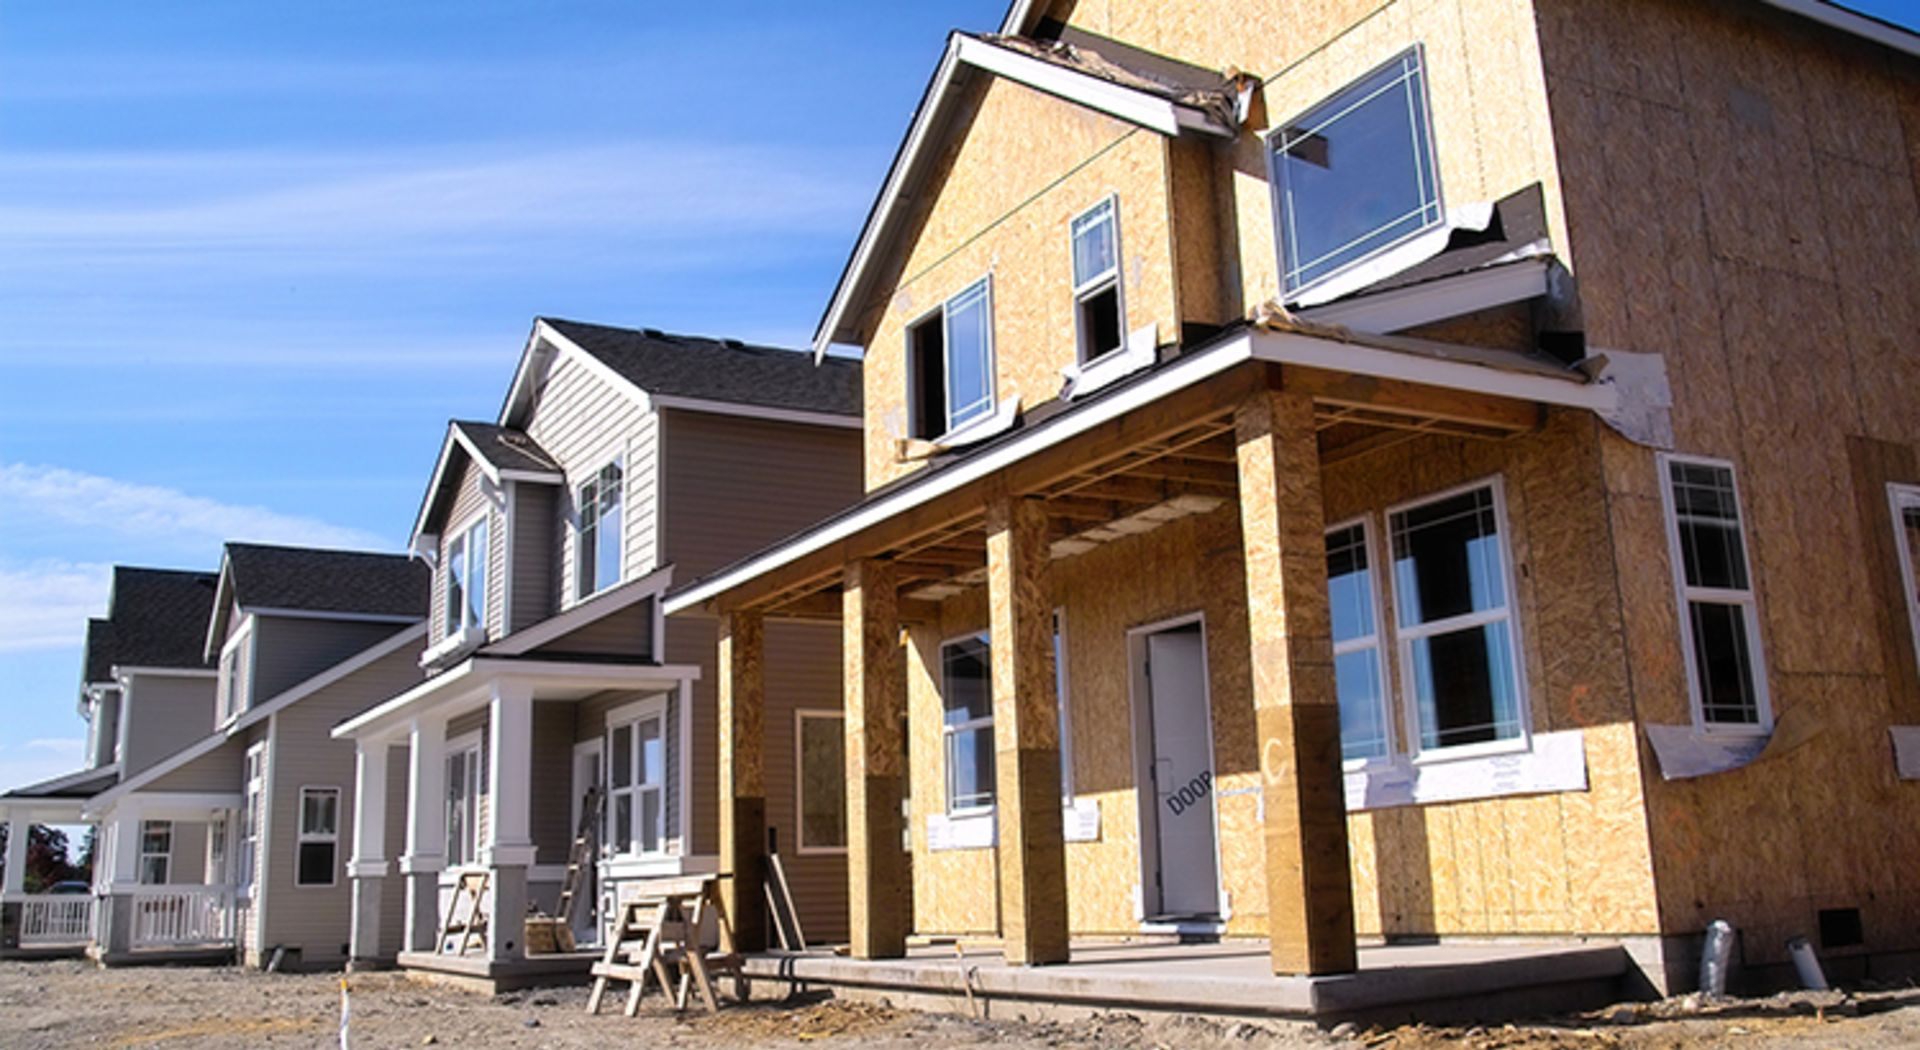 New Homes Sales Up 12.7% From Last Year